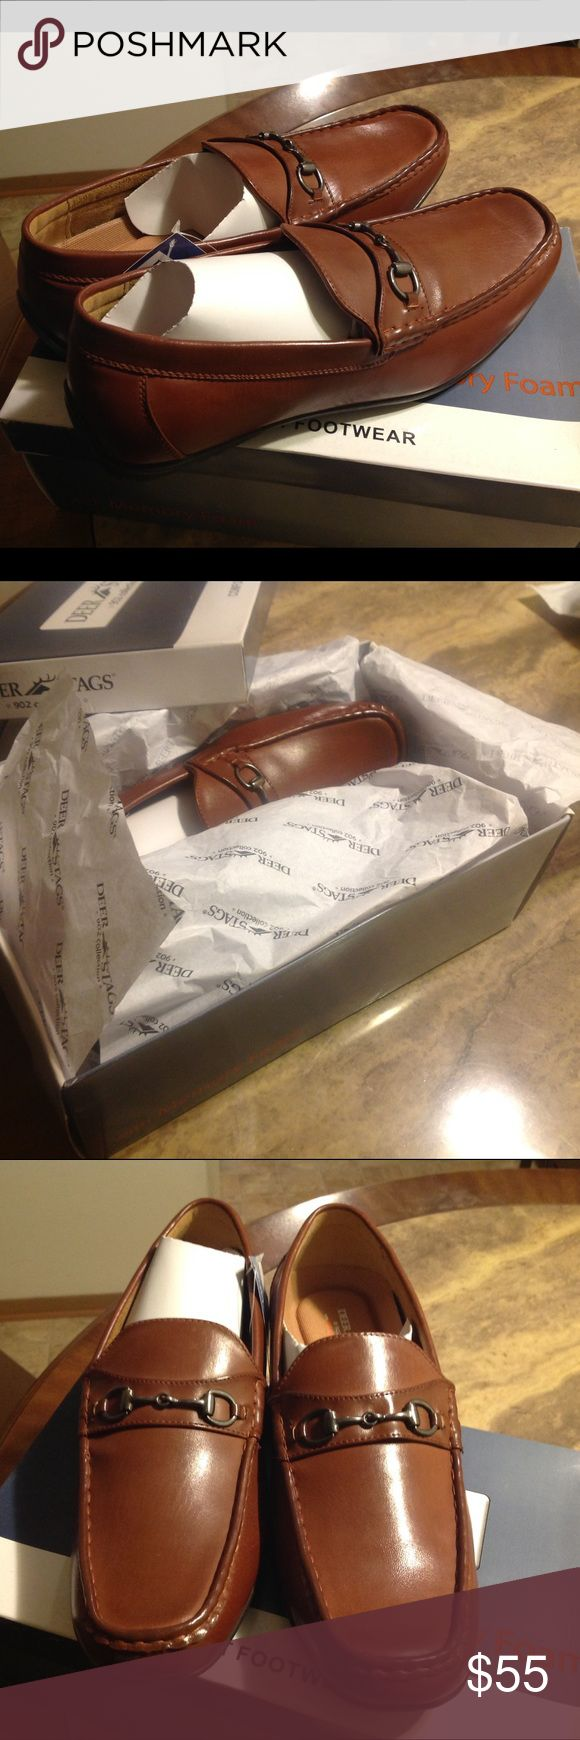 Deer Stags Manual Bit Loafers Brand new with tags, box and never worn. Vegan leather with removable, shock-absorbing memory-foam footbed molds to your foot and helps relieve pressure points. Deer Stags Shoes Loafers & Slip-Ons